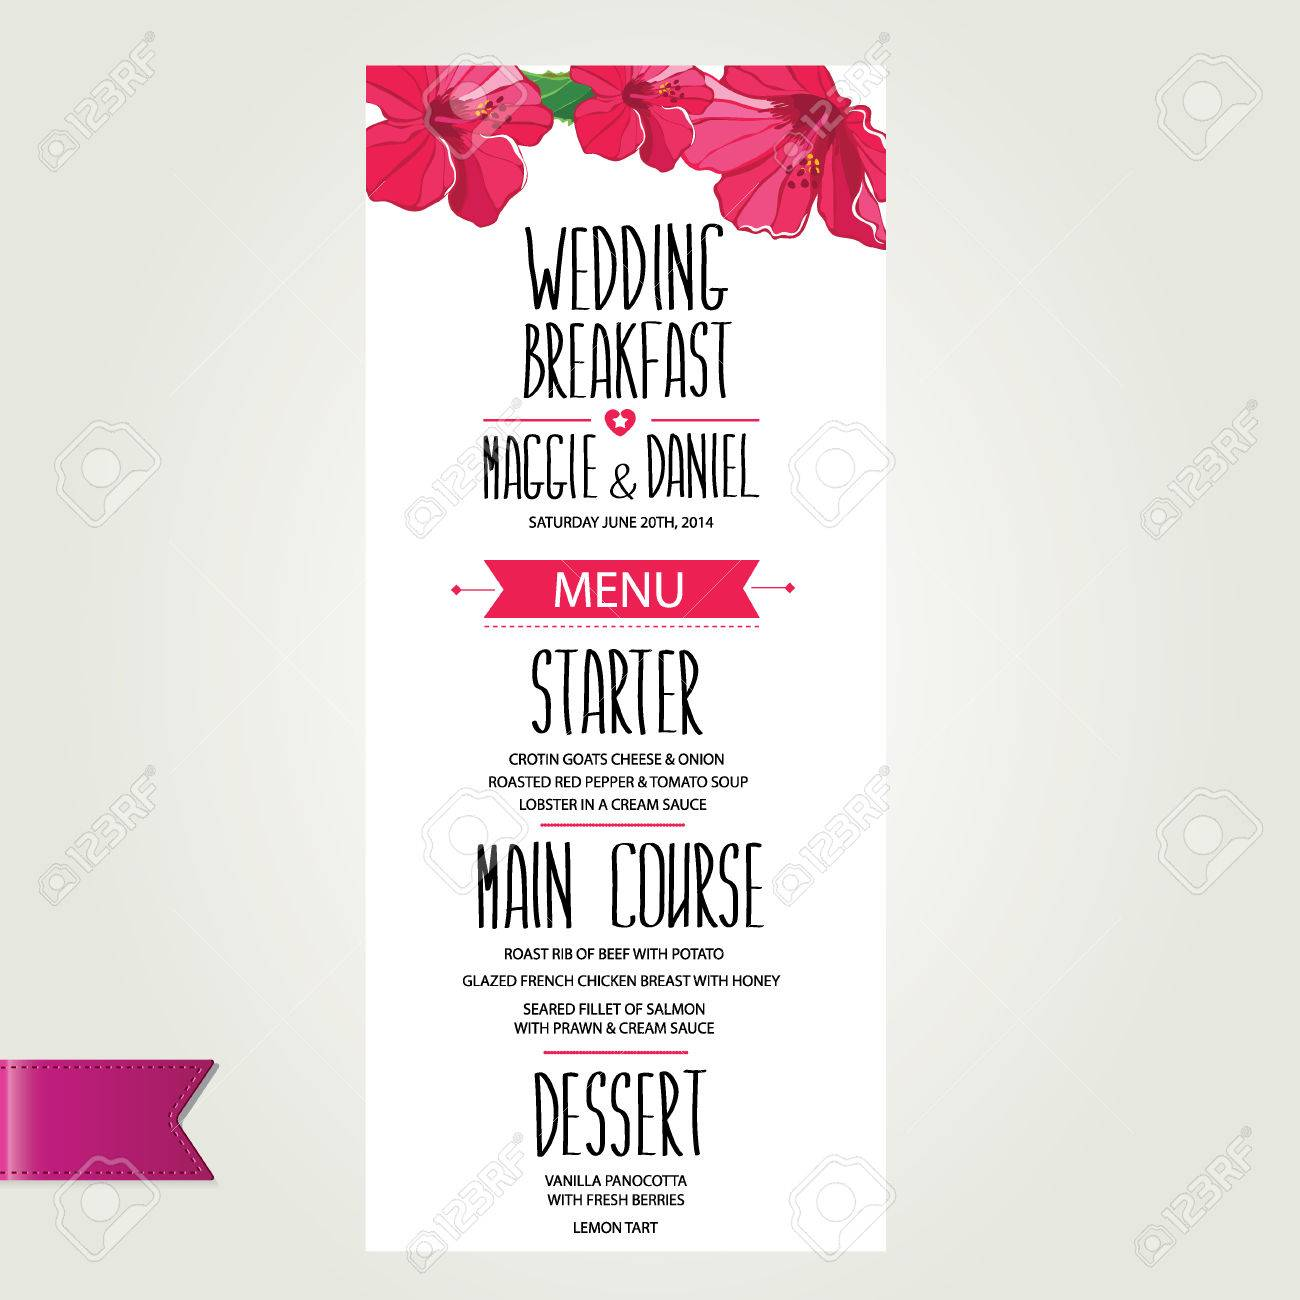 Sample Spa Menu Template Resume Template 22628117 Wedding Menu Template  Design Vector Illustration Stock Vector Sample